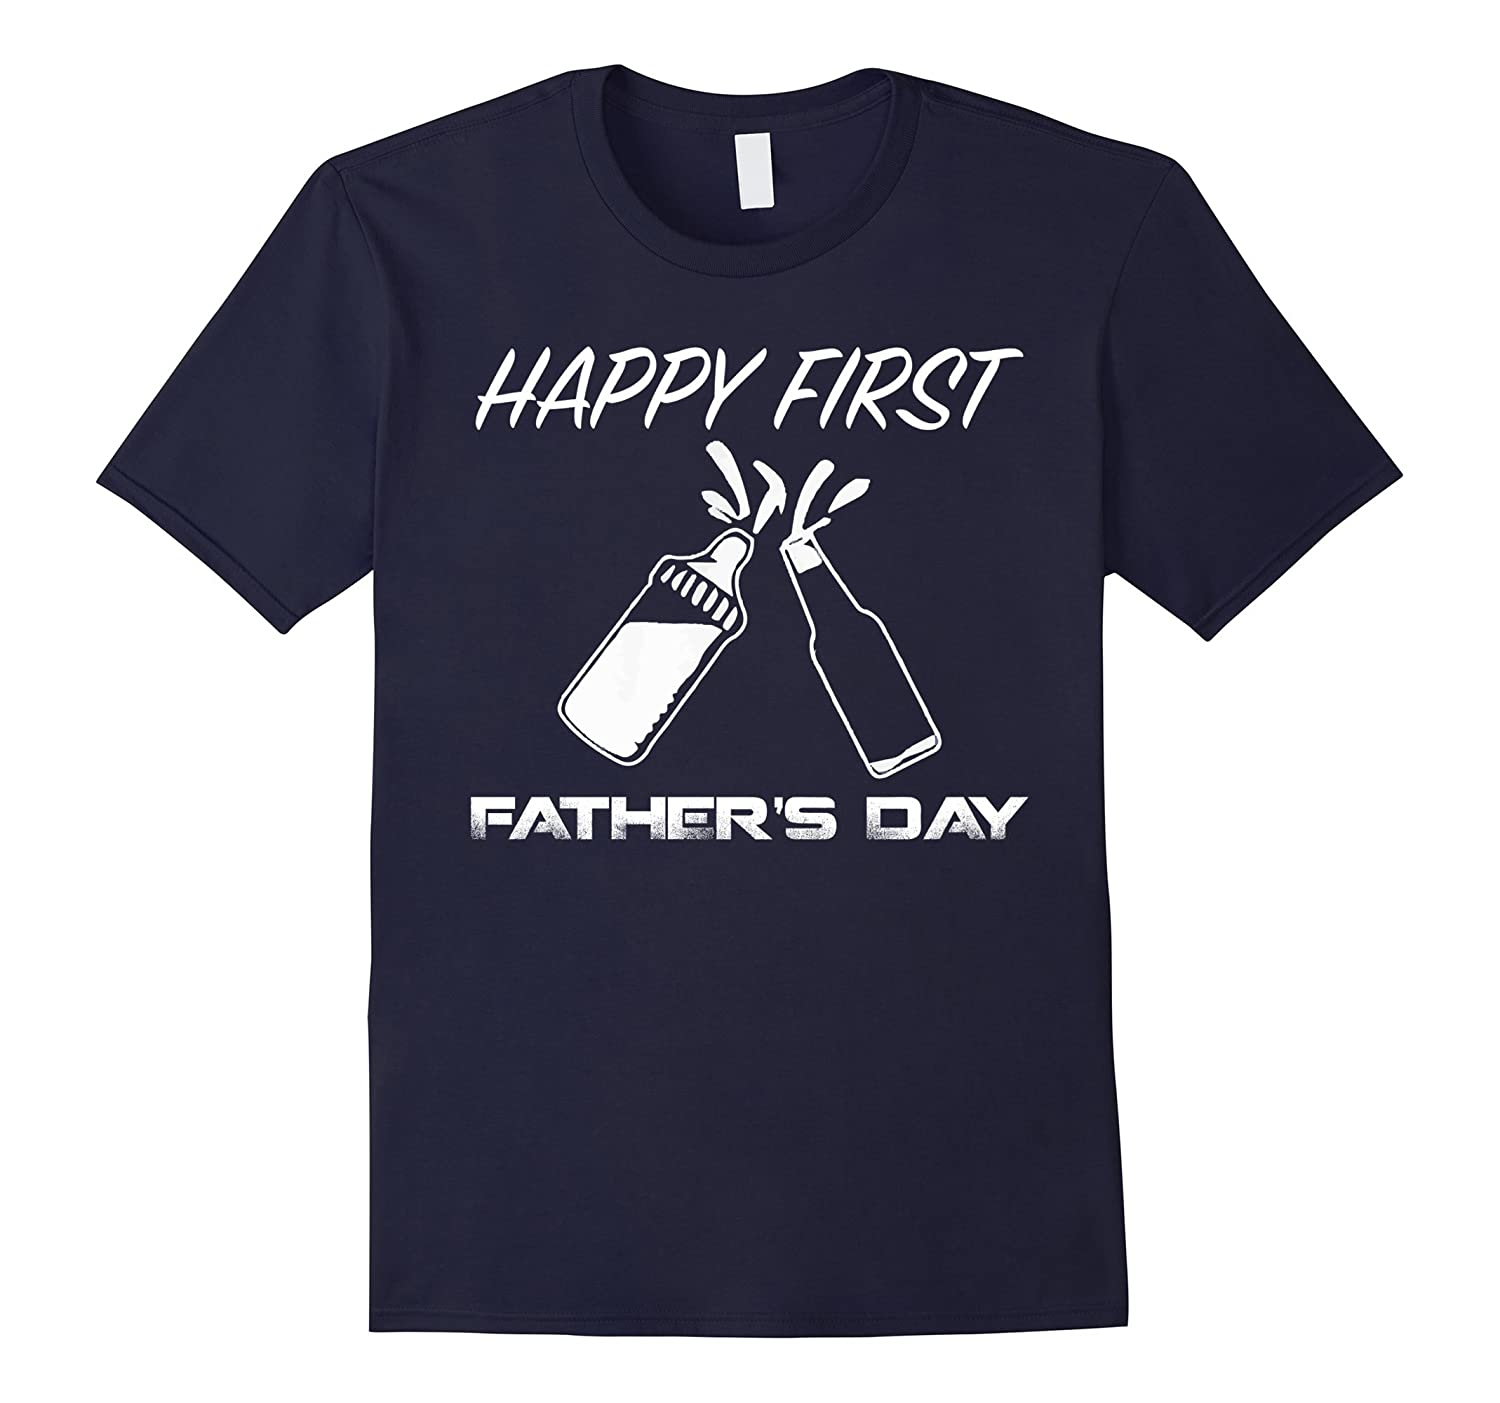 HAPPY FIRST FATHERS DAY T-SHIRT FATHERS DAY GIFT-Vaci